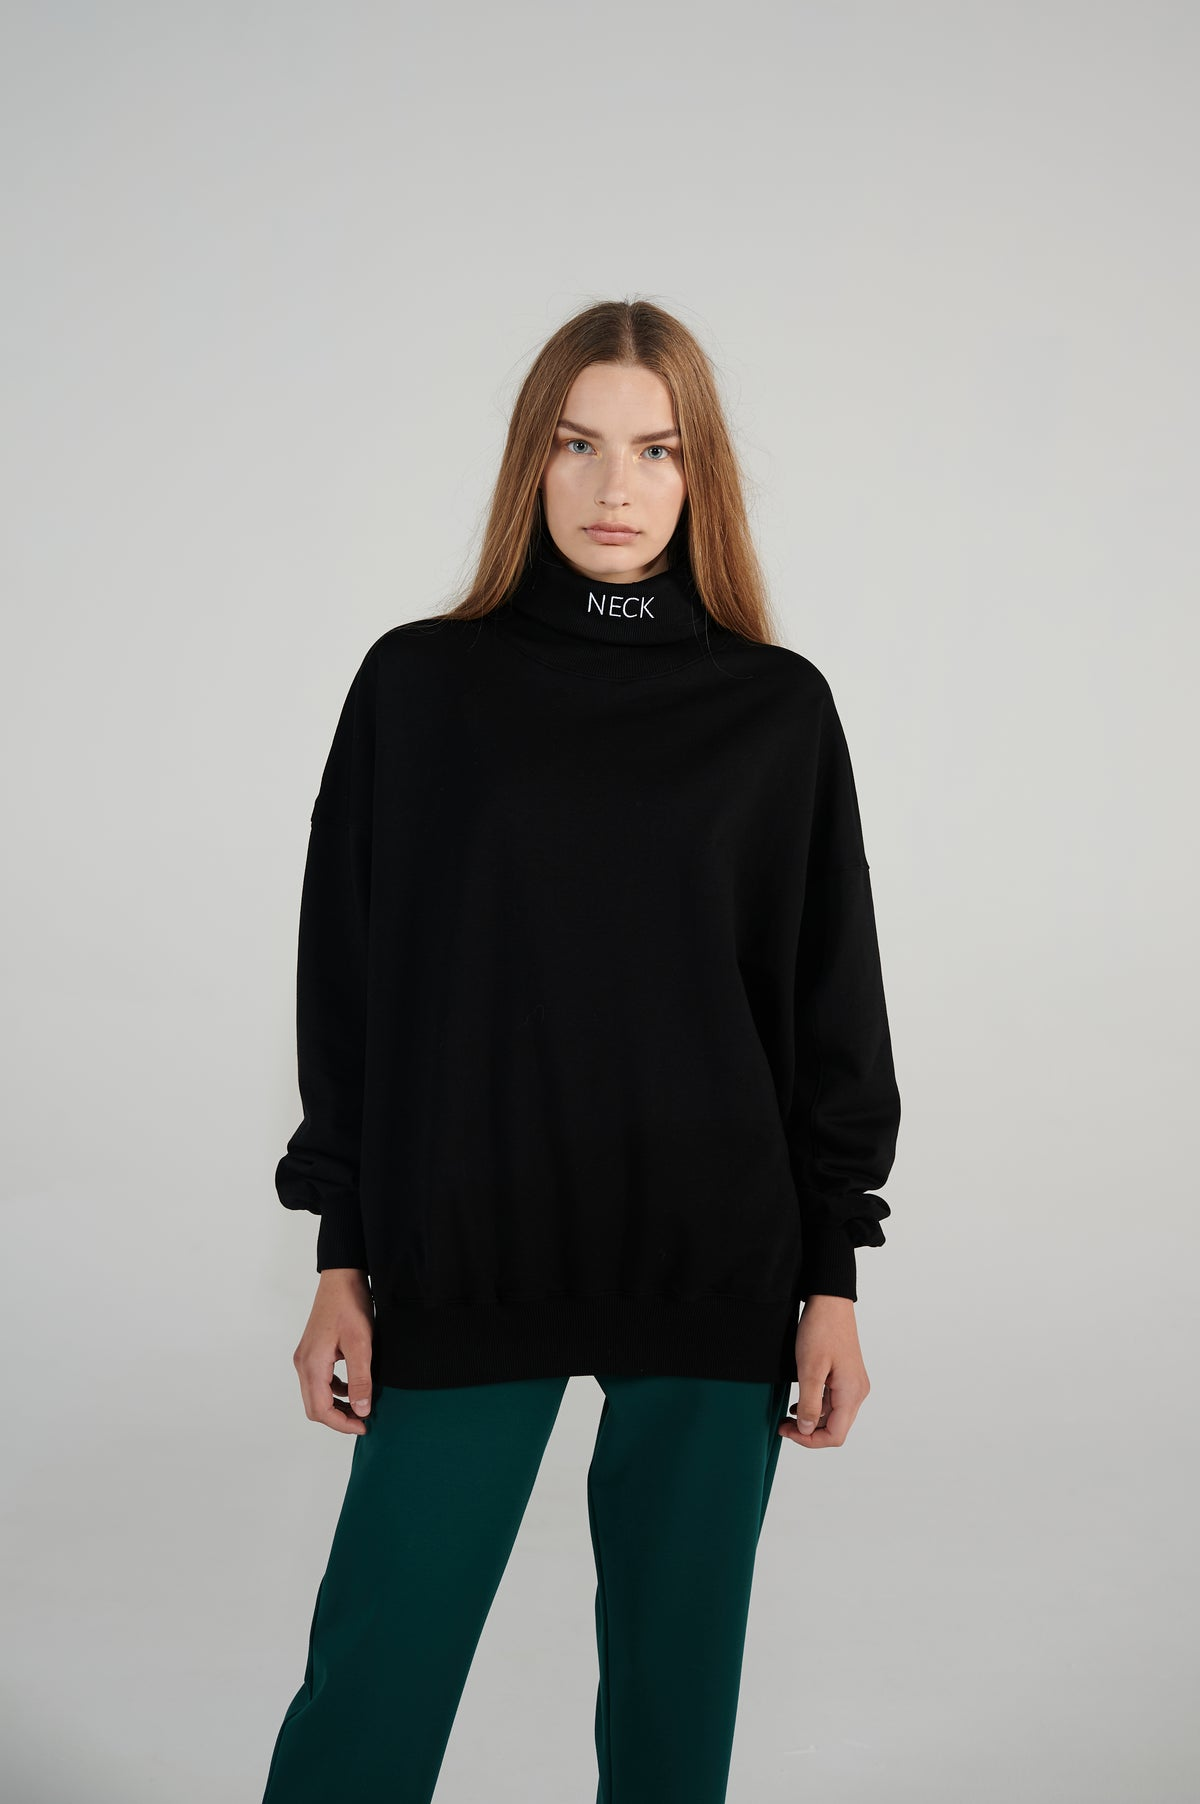 relaxed-fit-ribbed-trims-loose-round-turtleneck-unisex-sweater-le-slap.jpg